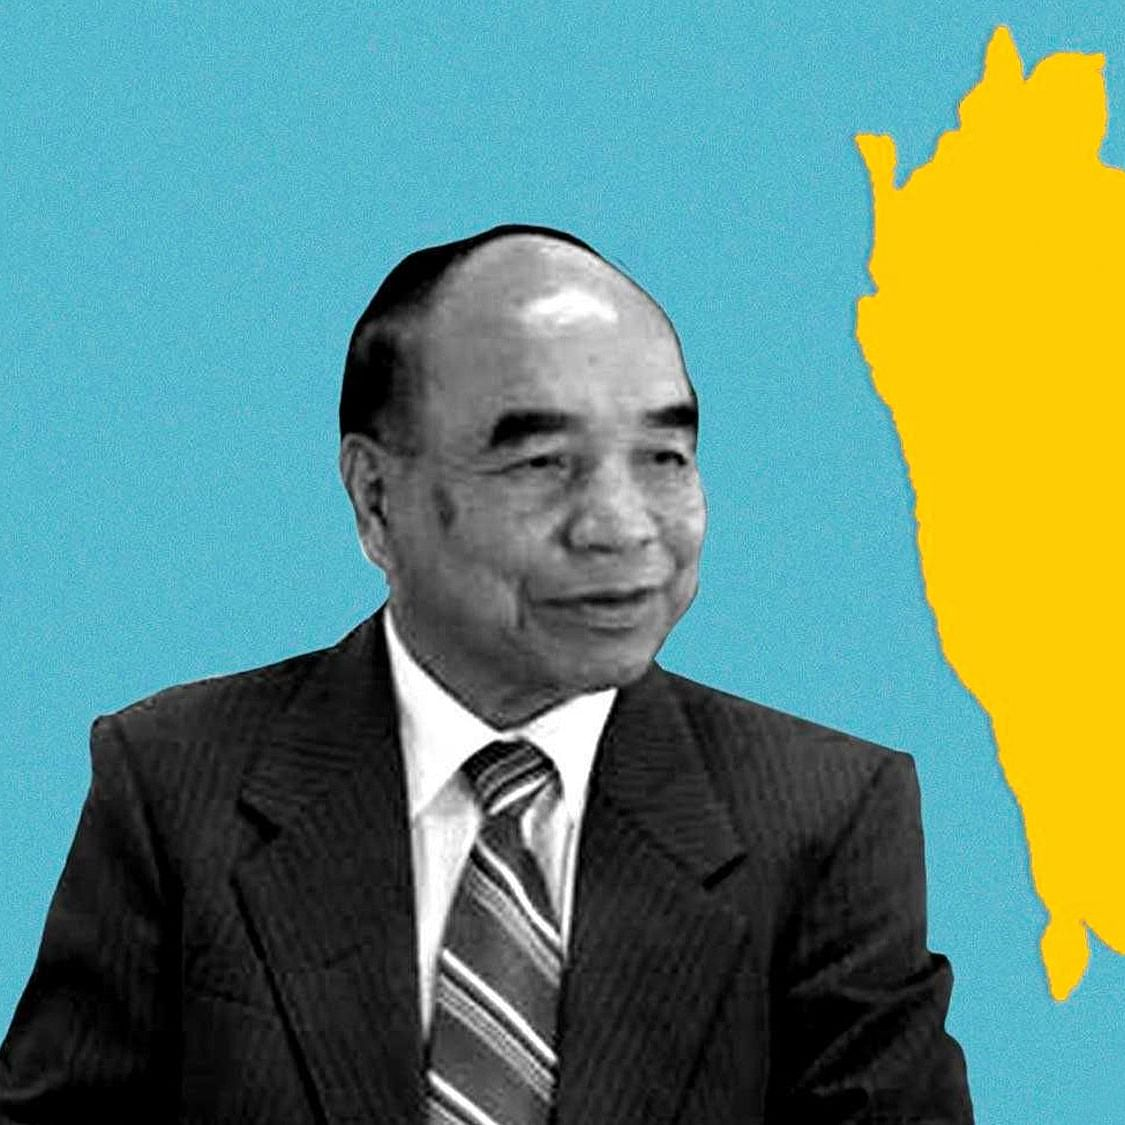 Mizoram Polls: MNF Leader Zoramthanga Takes Oath as Chief Minister